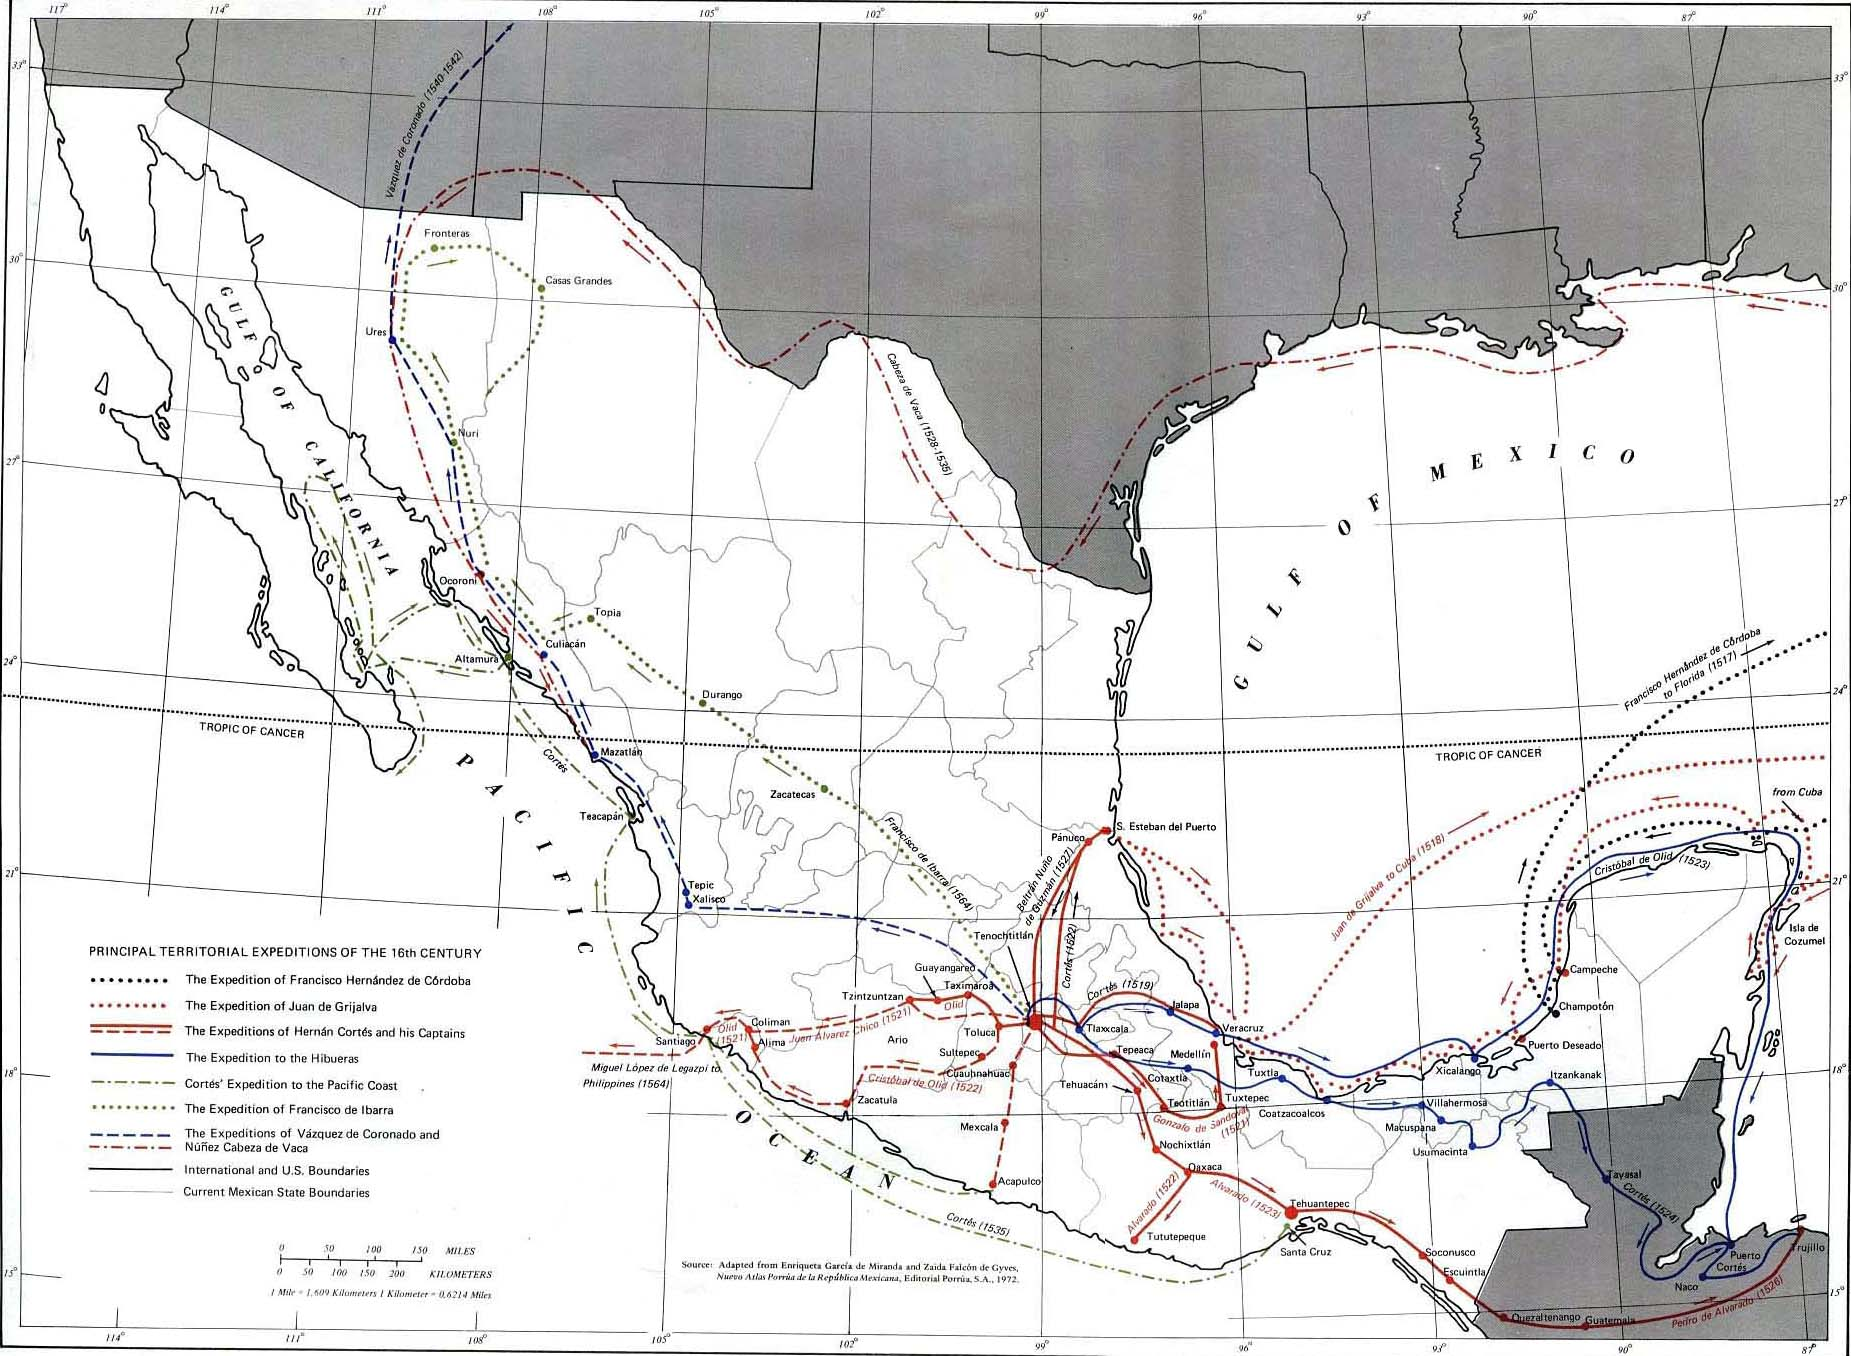 Mexico 16th Century - Expeditions